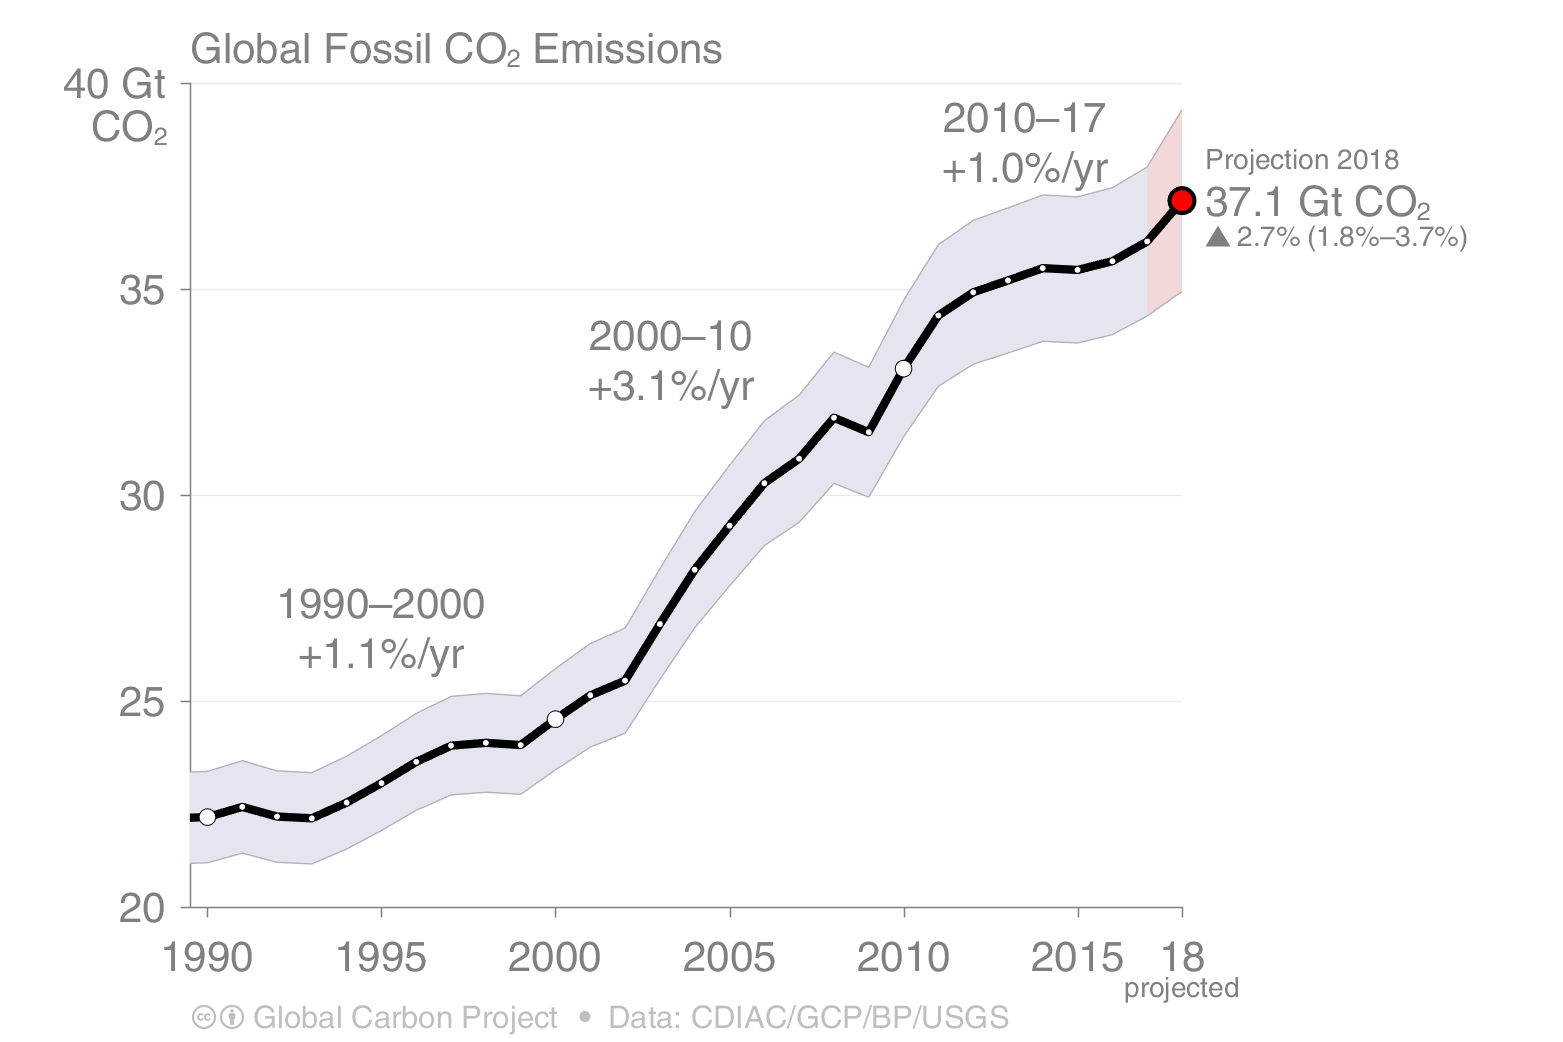 Global Fossil CO2 and cement emissions from 1990 on